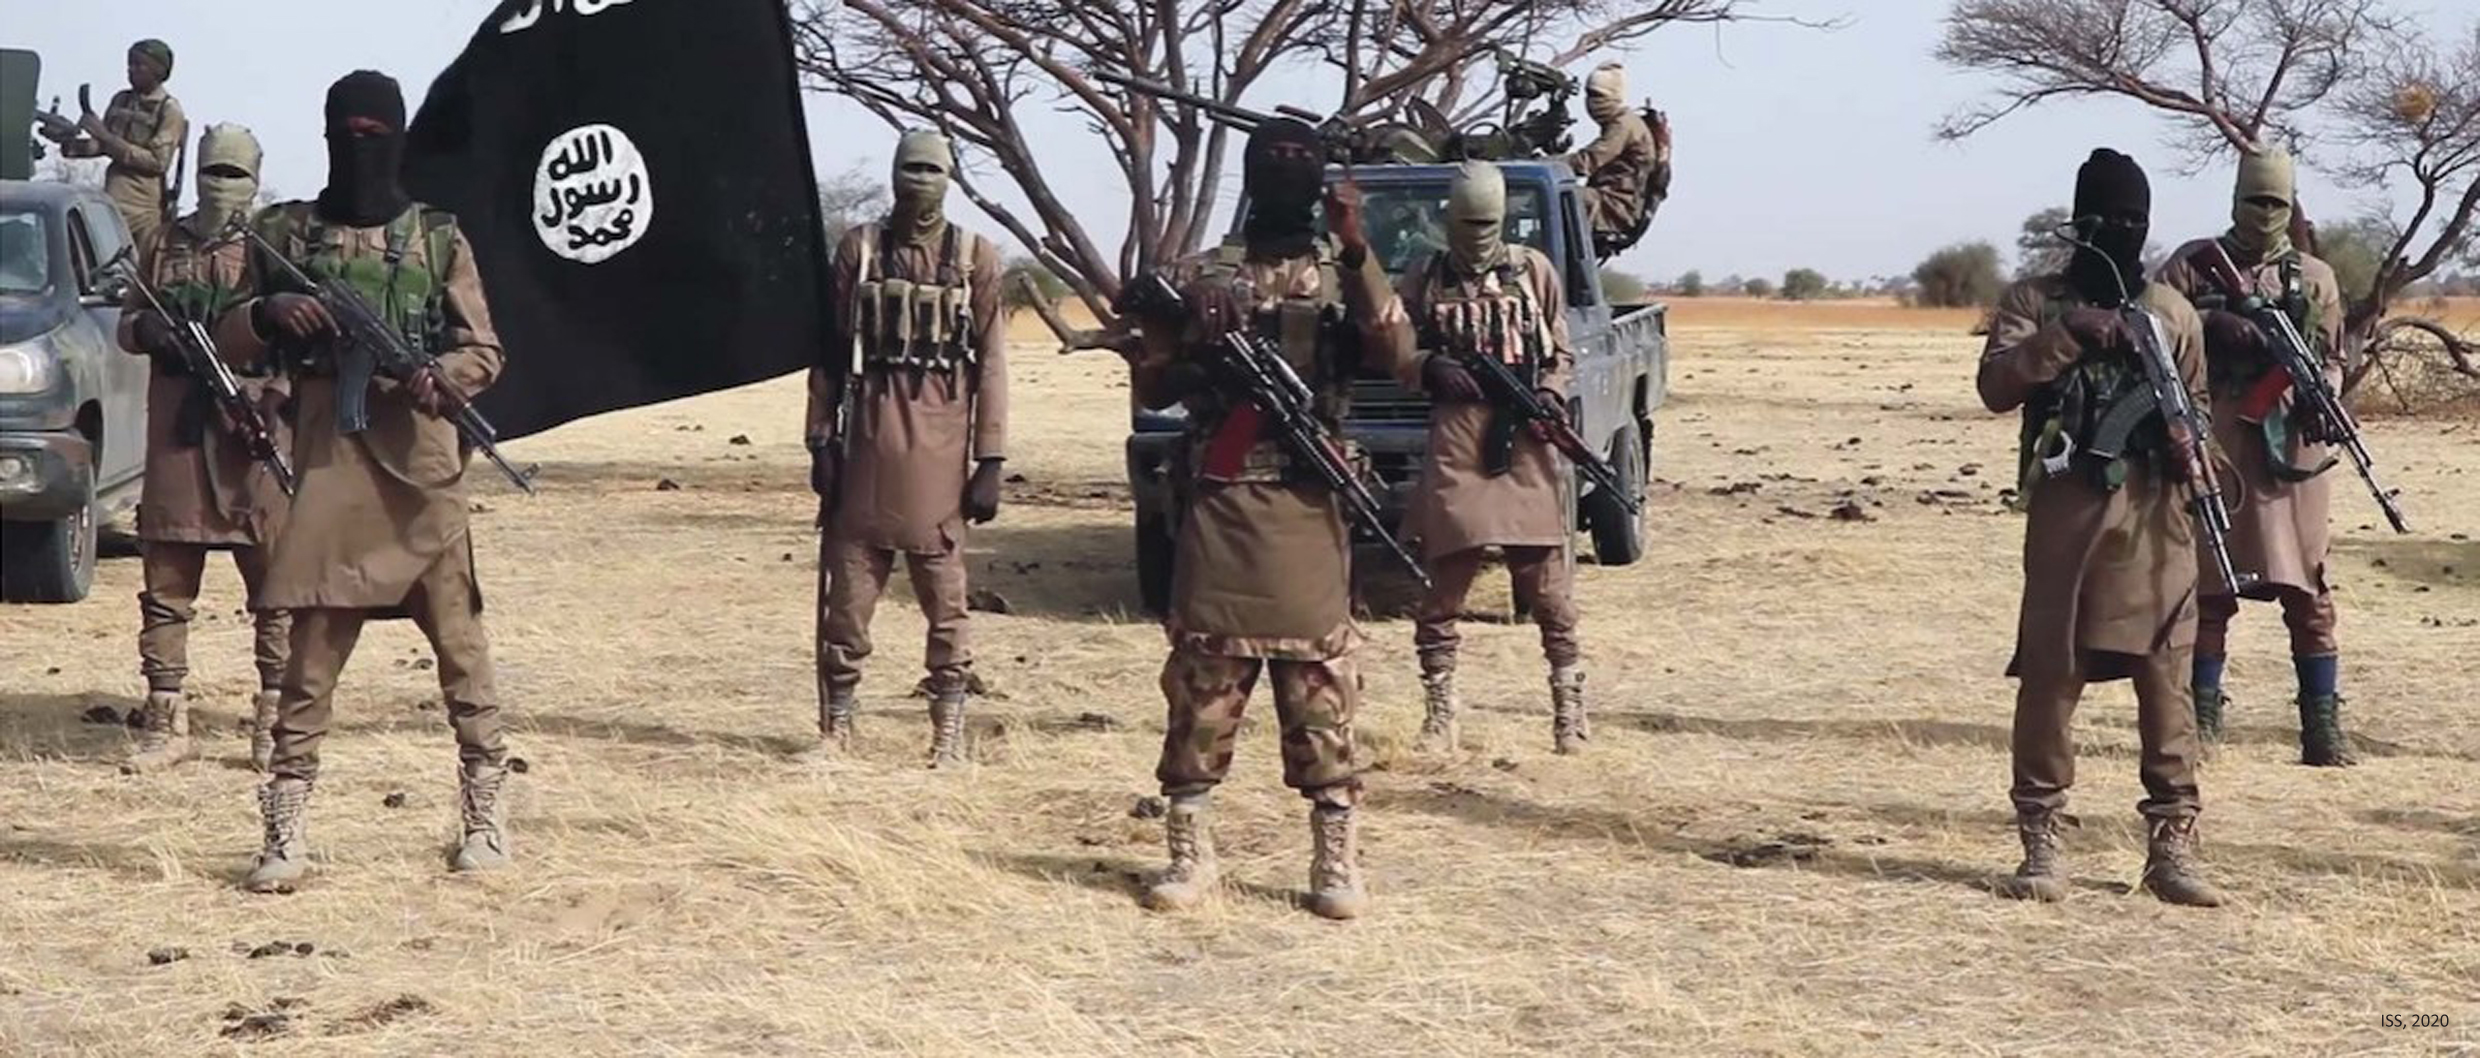 ventdouxprod 2020 the European Union and France contribute to the rise of extremism and Boko Haram in the Sahel